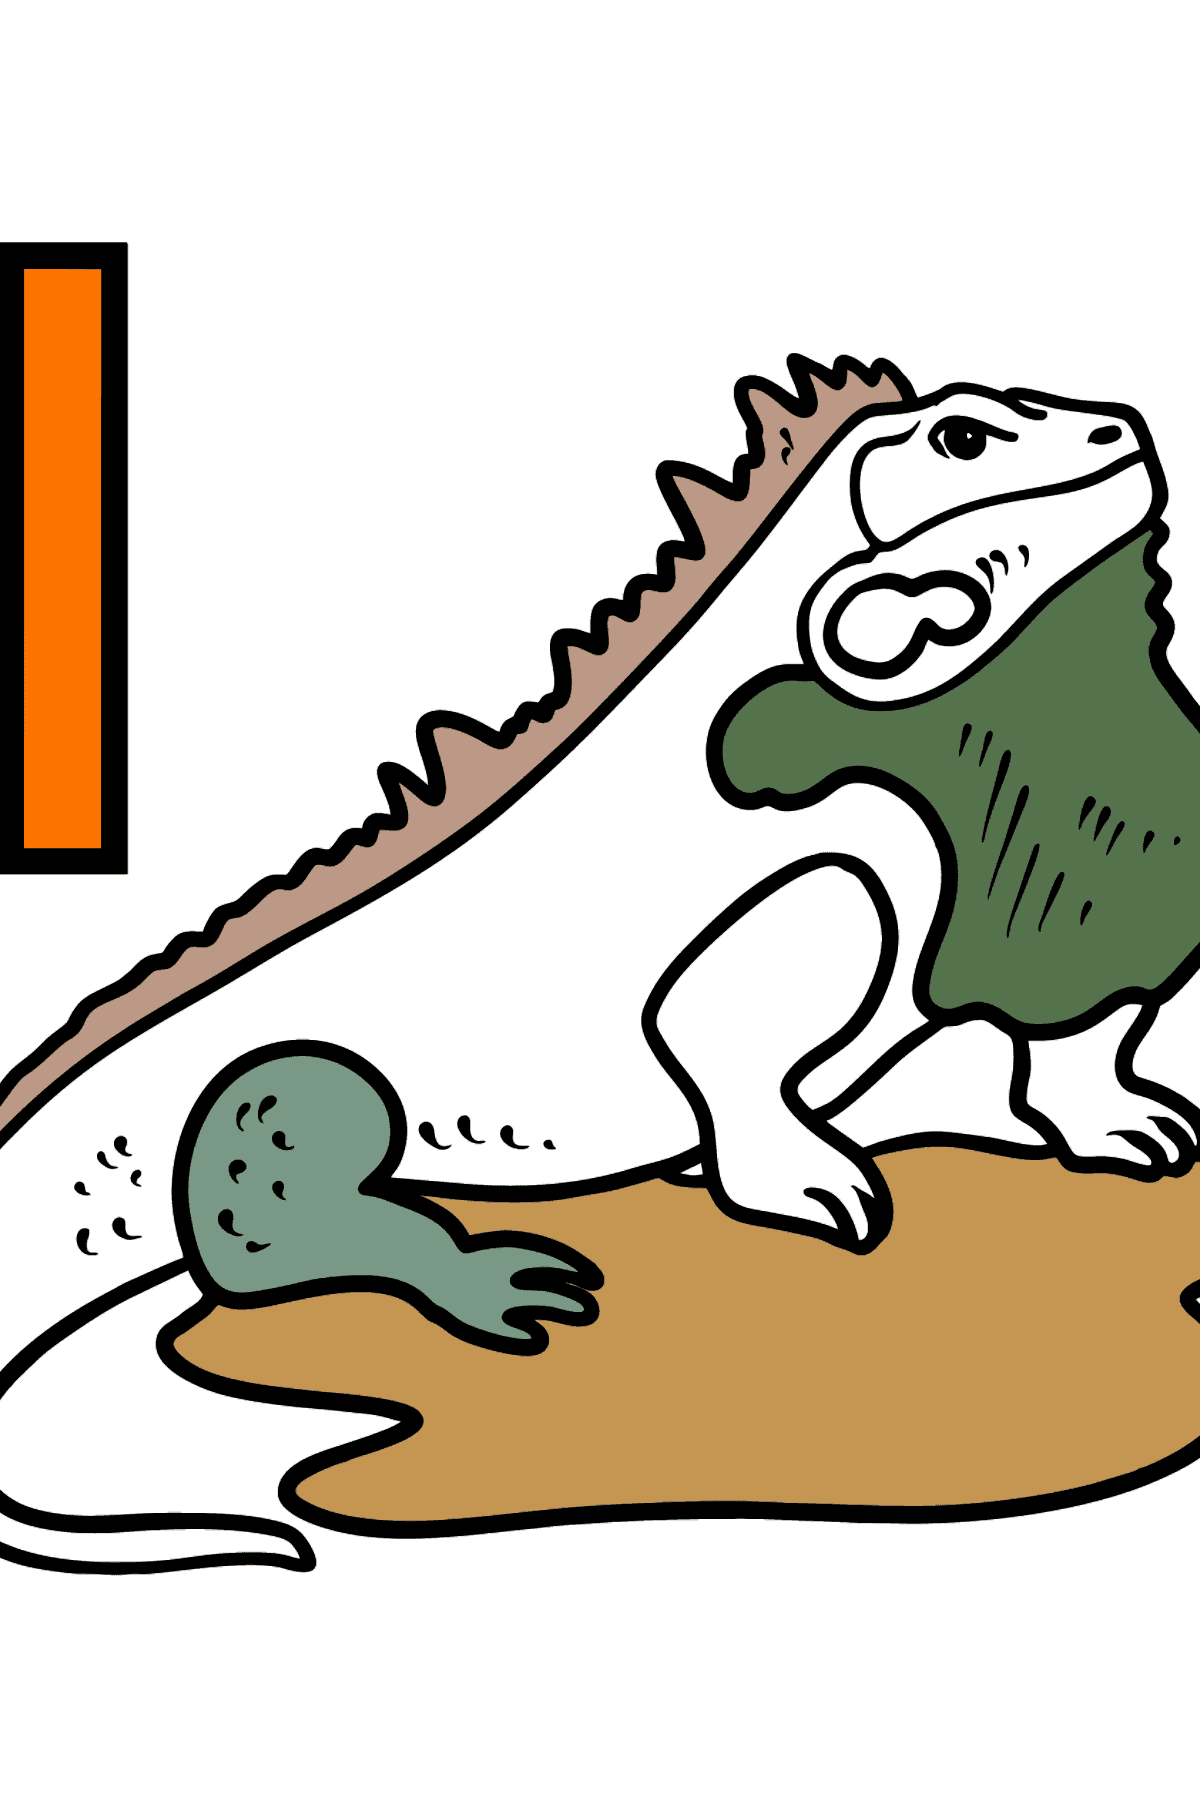 French Letter I coloring pages - IGUANE - Coloring Pages for Kids